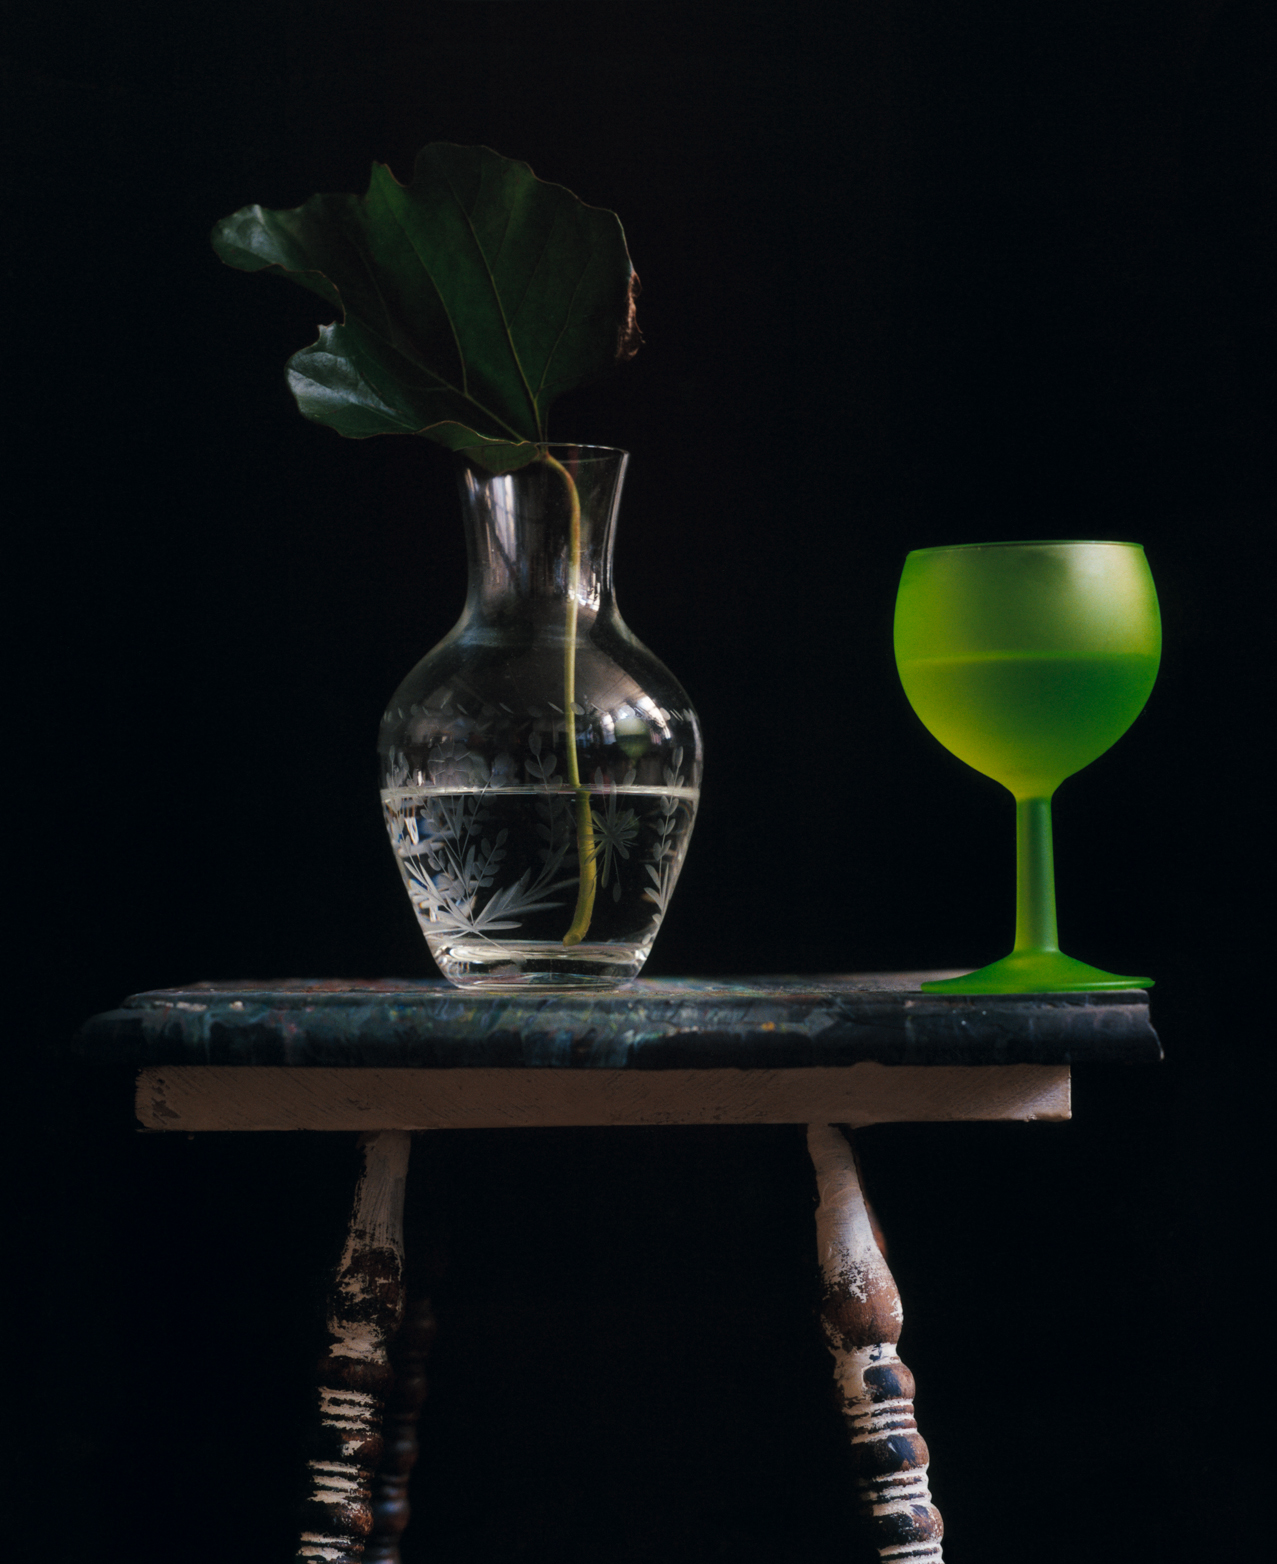 Still life with a green glass.jpg